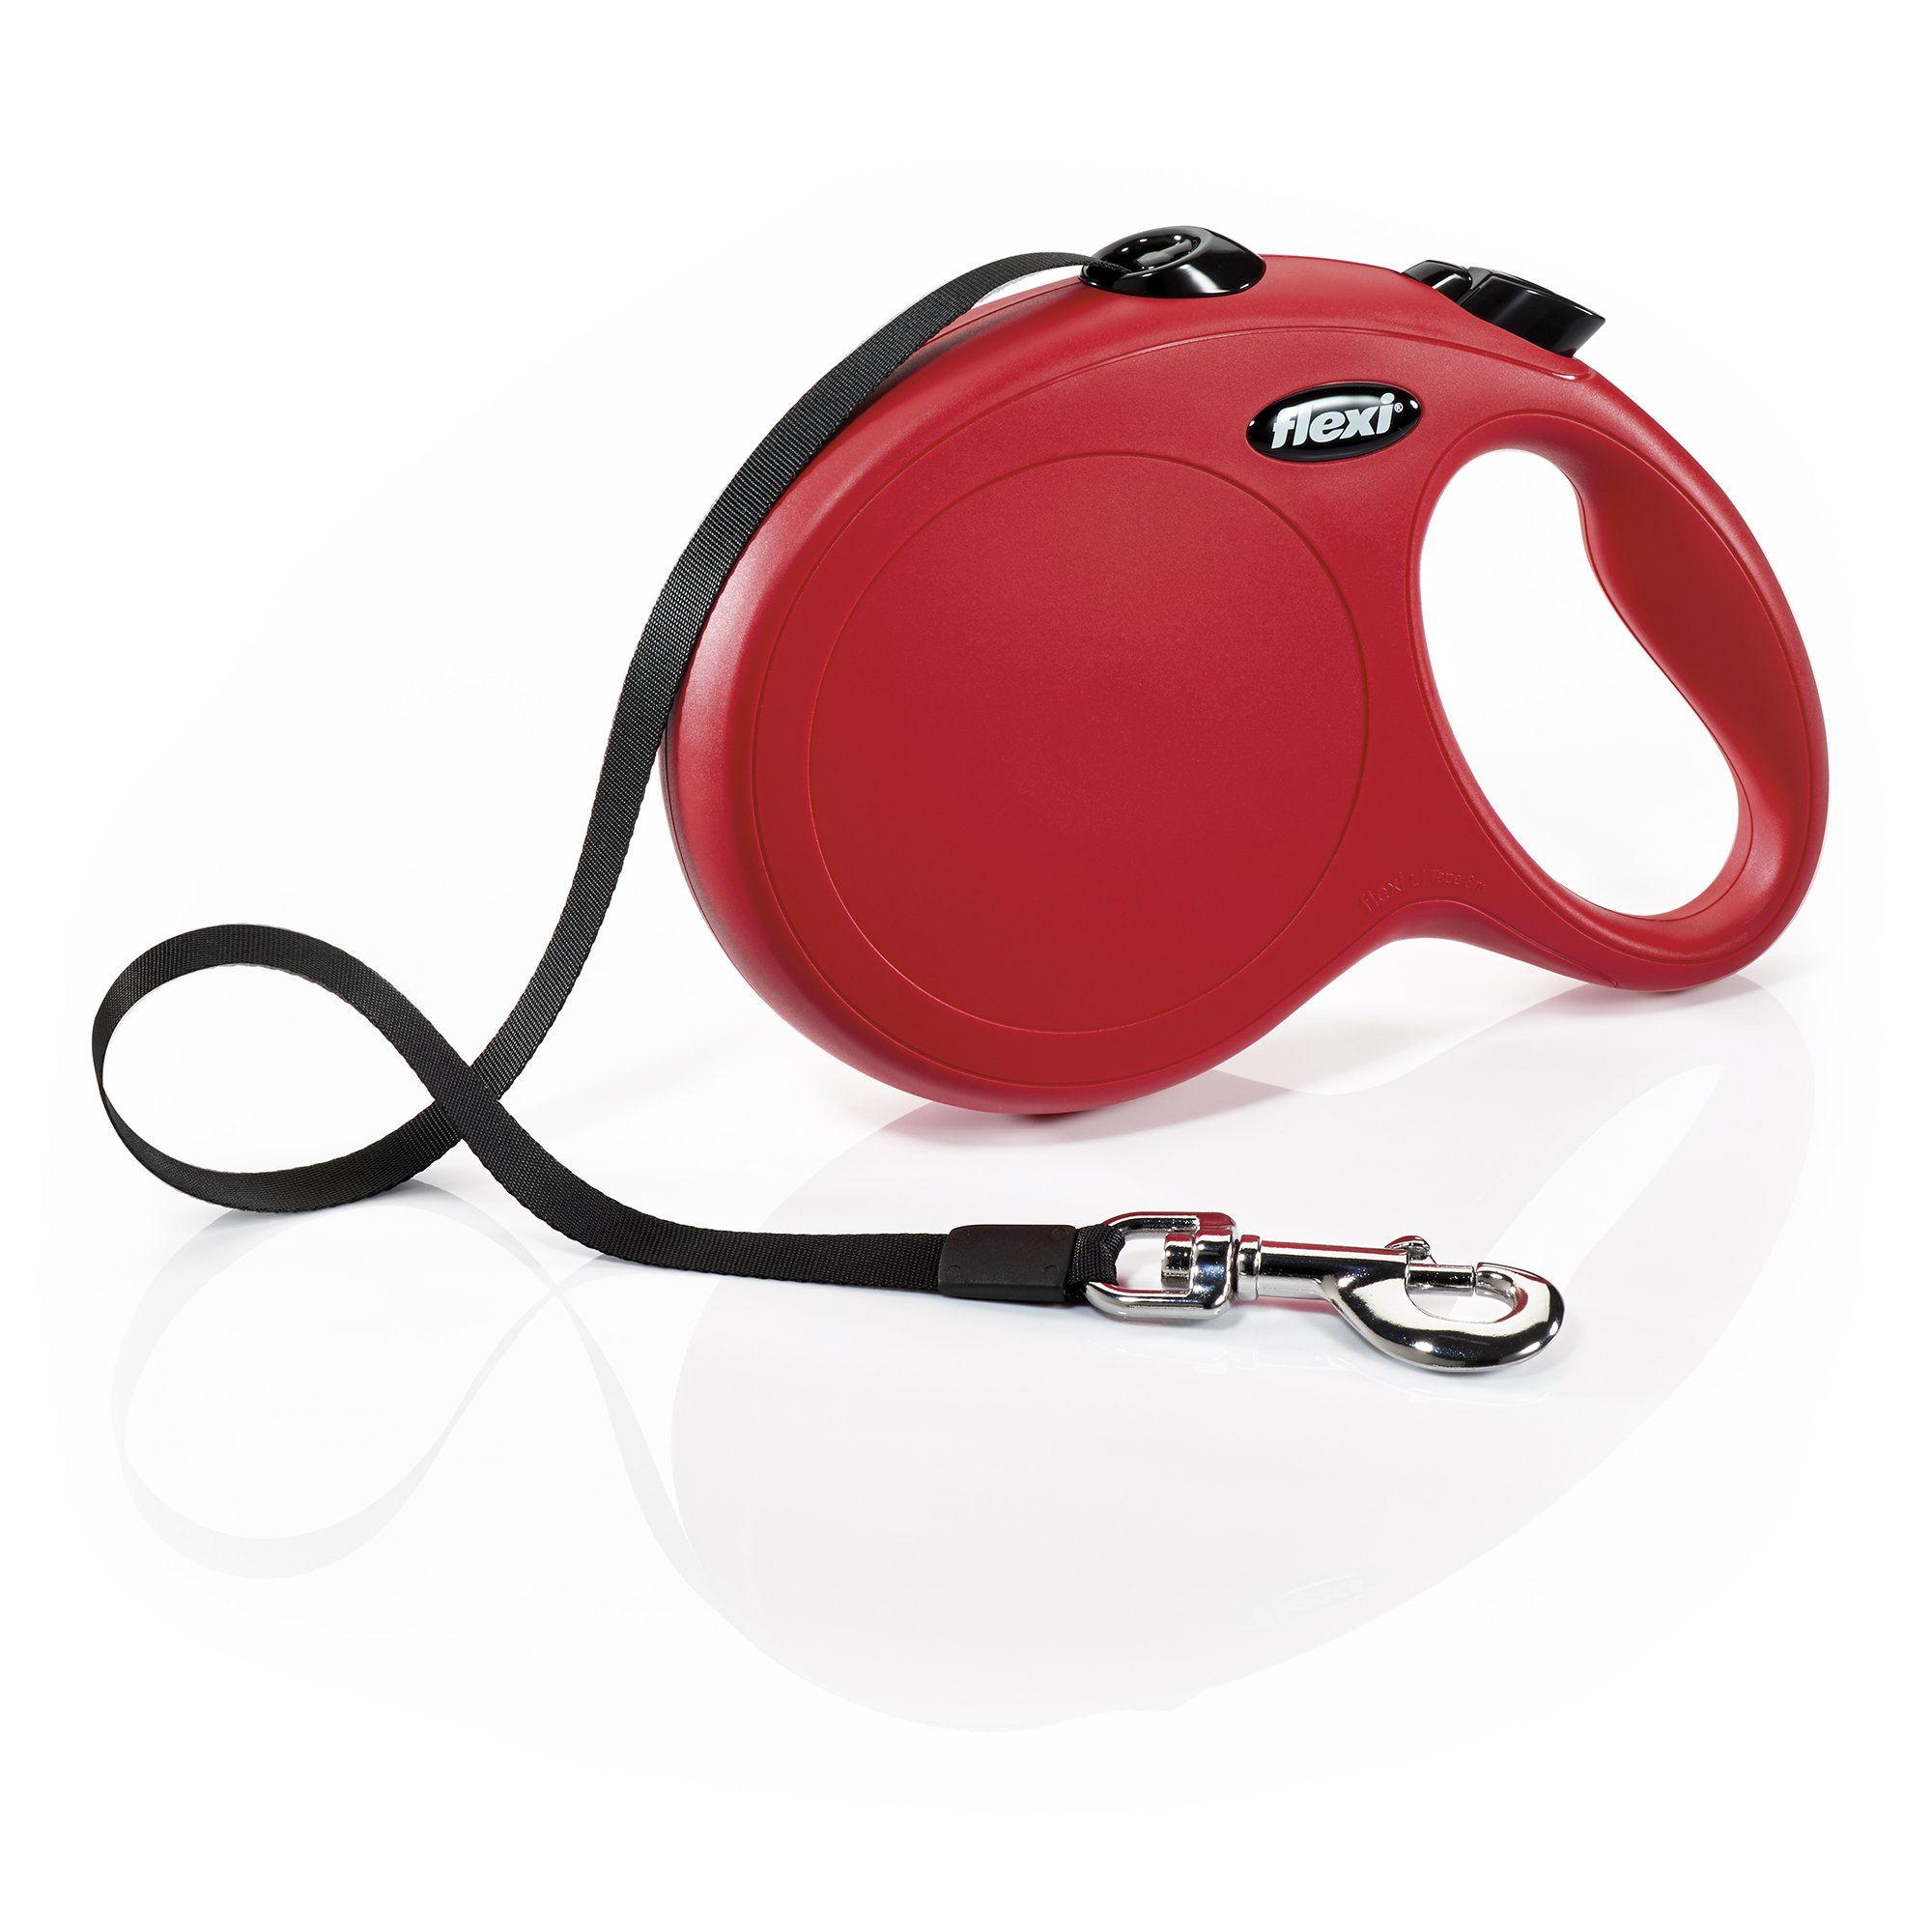 Flexi New Classic Tape Retractable Leash, Red, Large/26' by Flexi